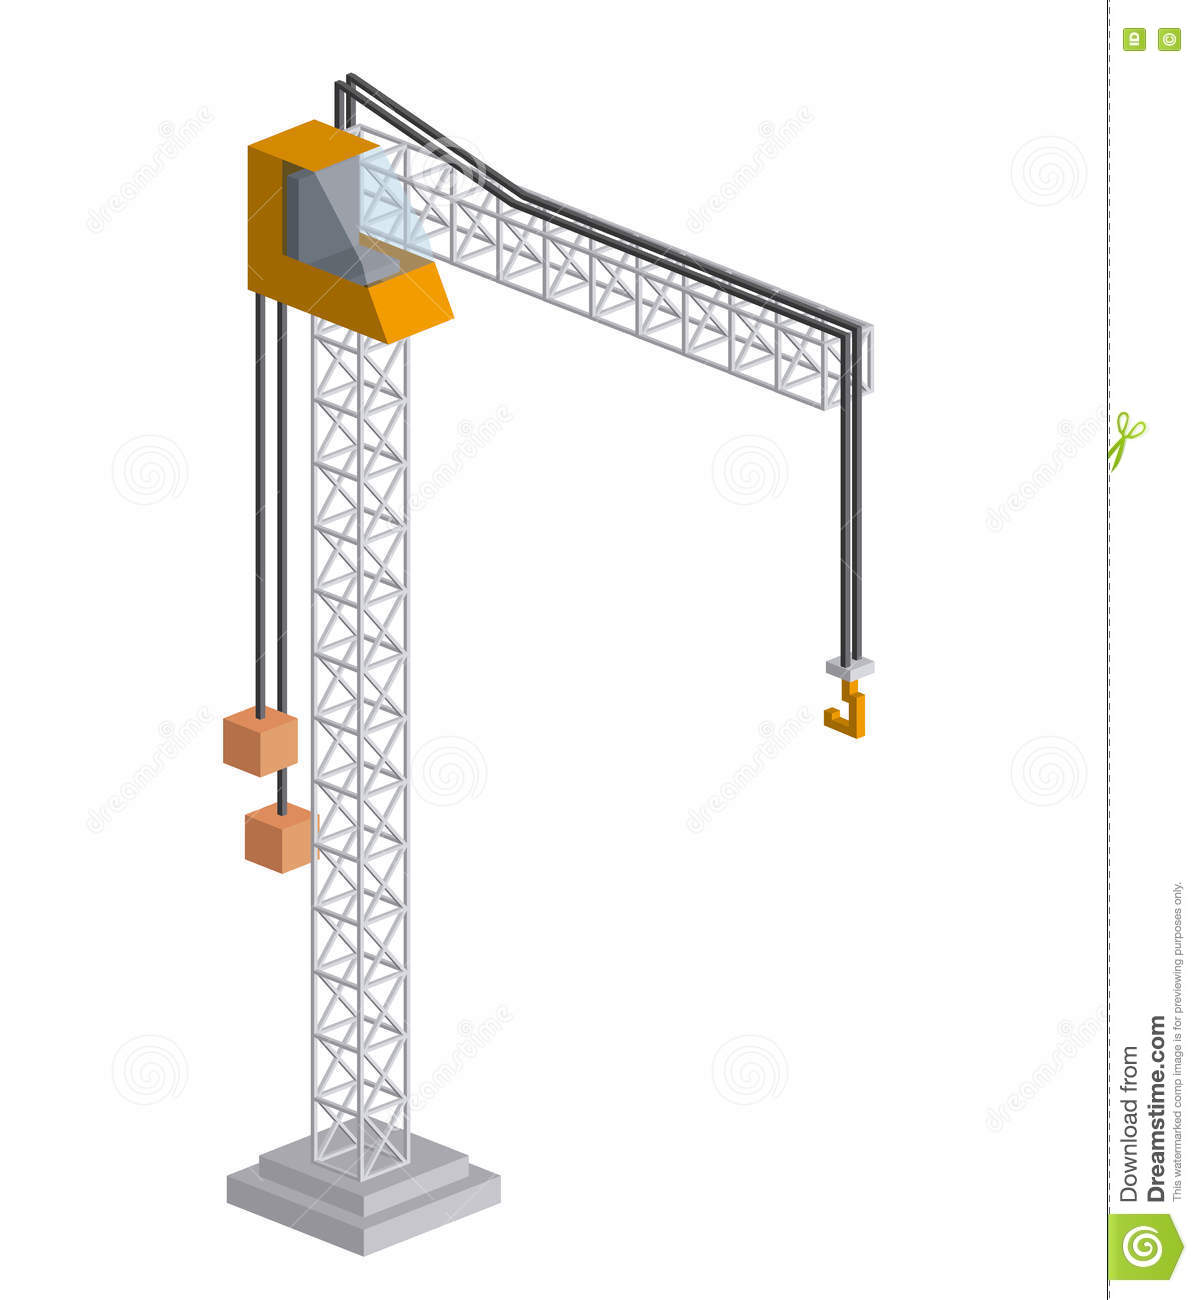 Tower Crane Design Calculations : Tower crane isometric icon stock vector illustration of